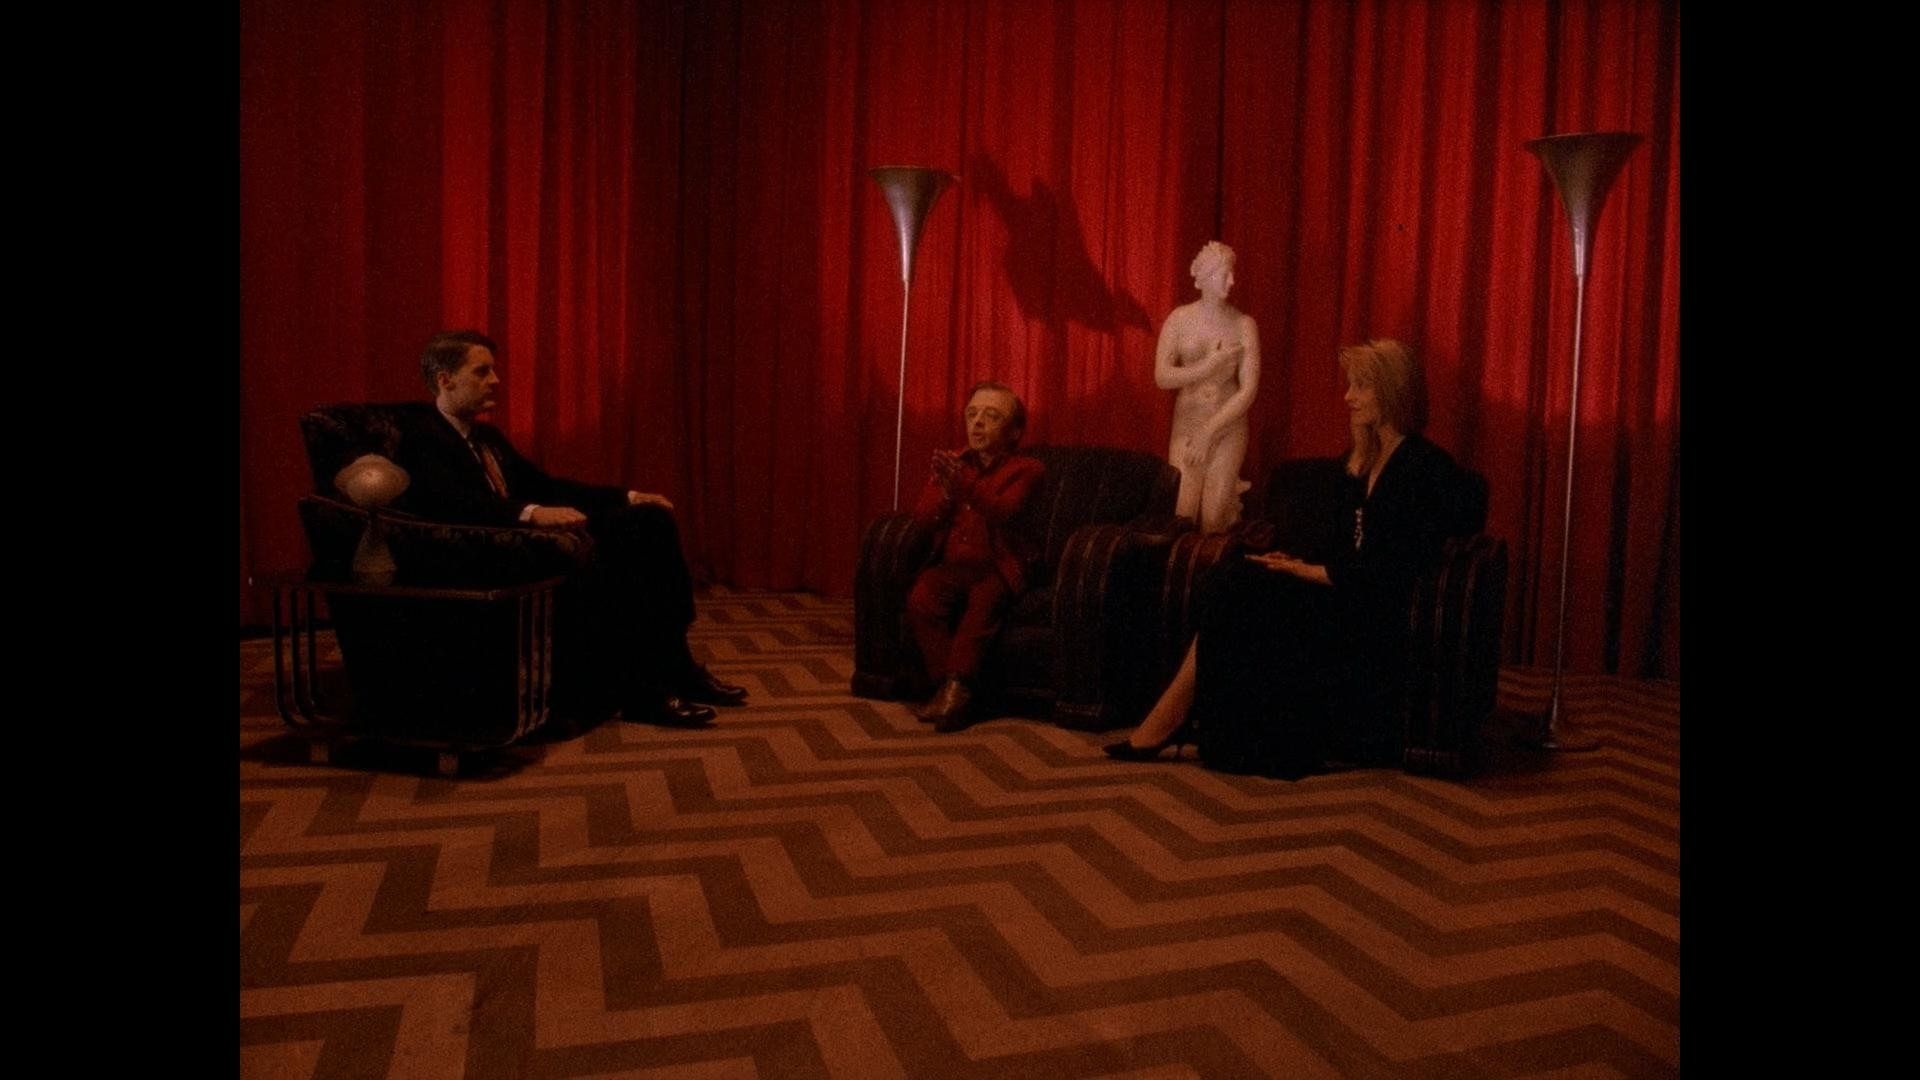 First time we see The Waiting Room – Season 1 Episode 3 …